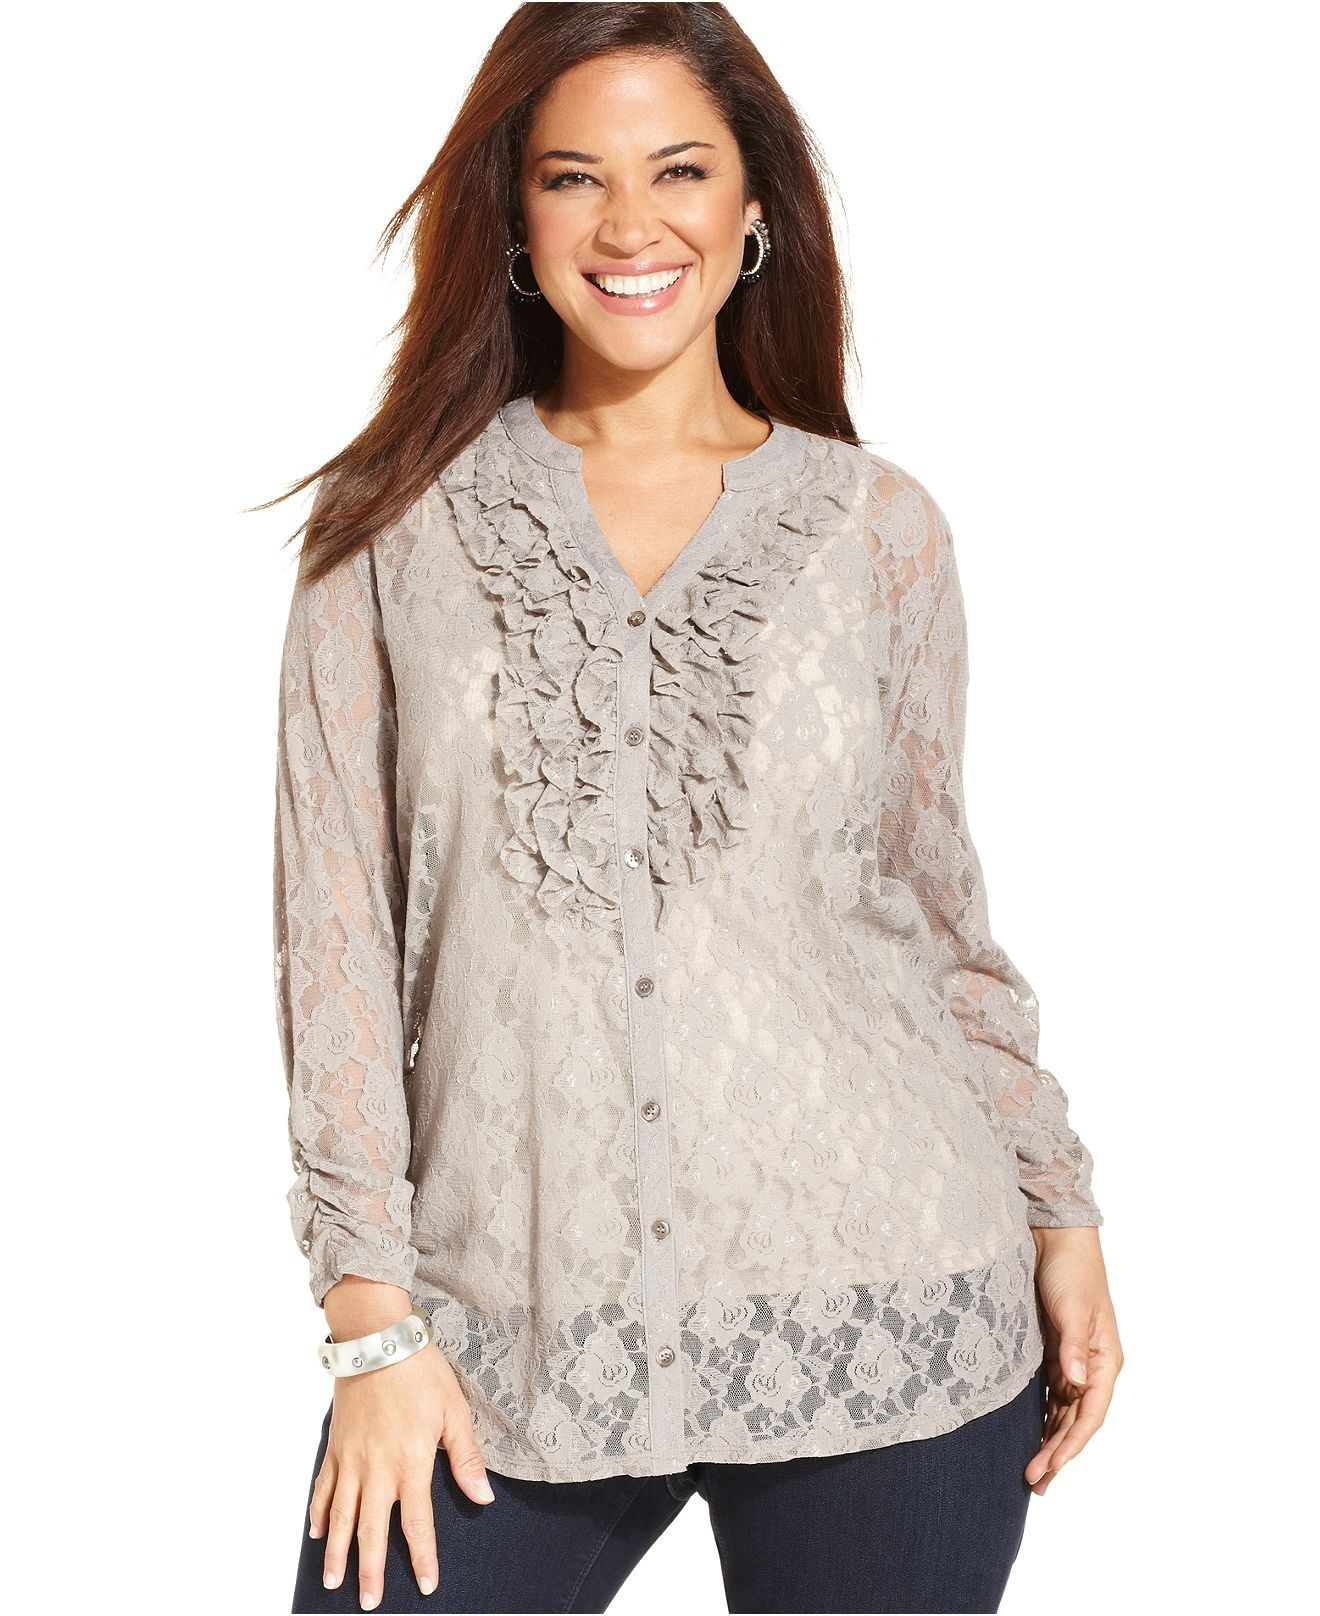 ef8841ba2f23f Style Plus Size Top